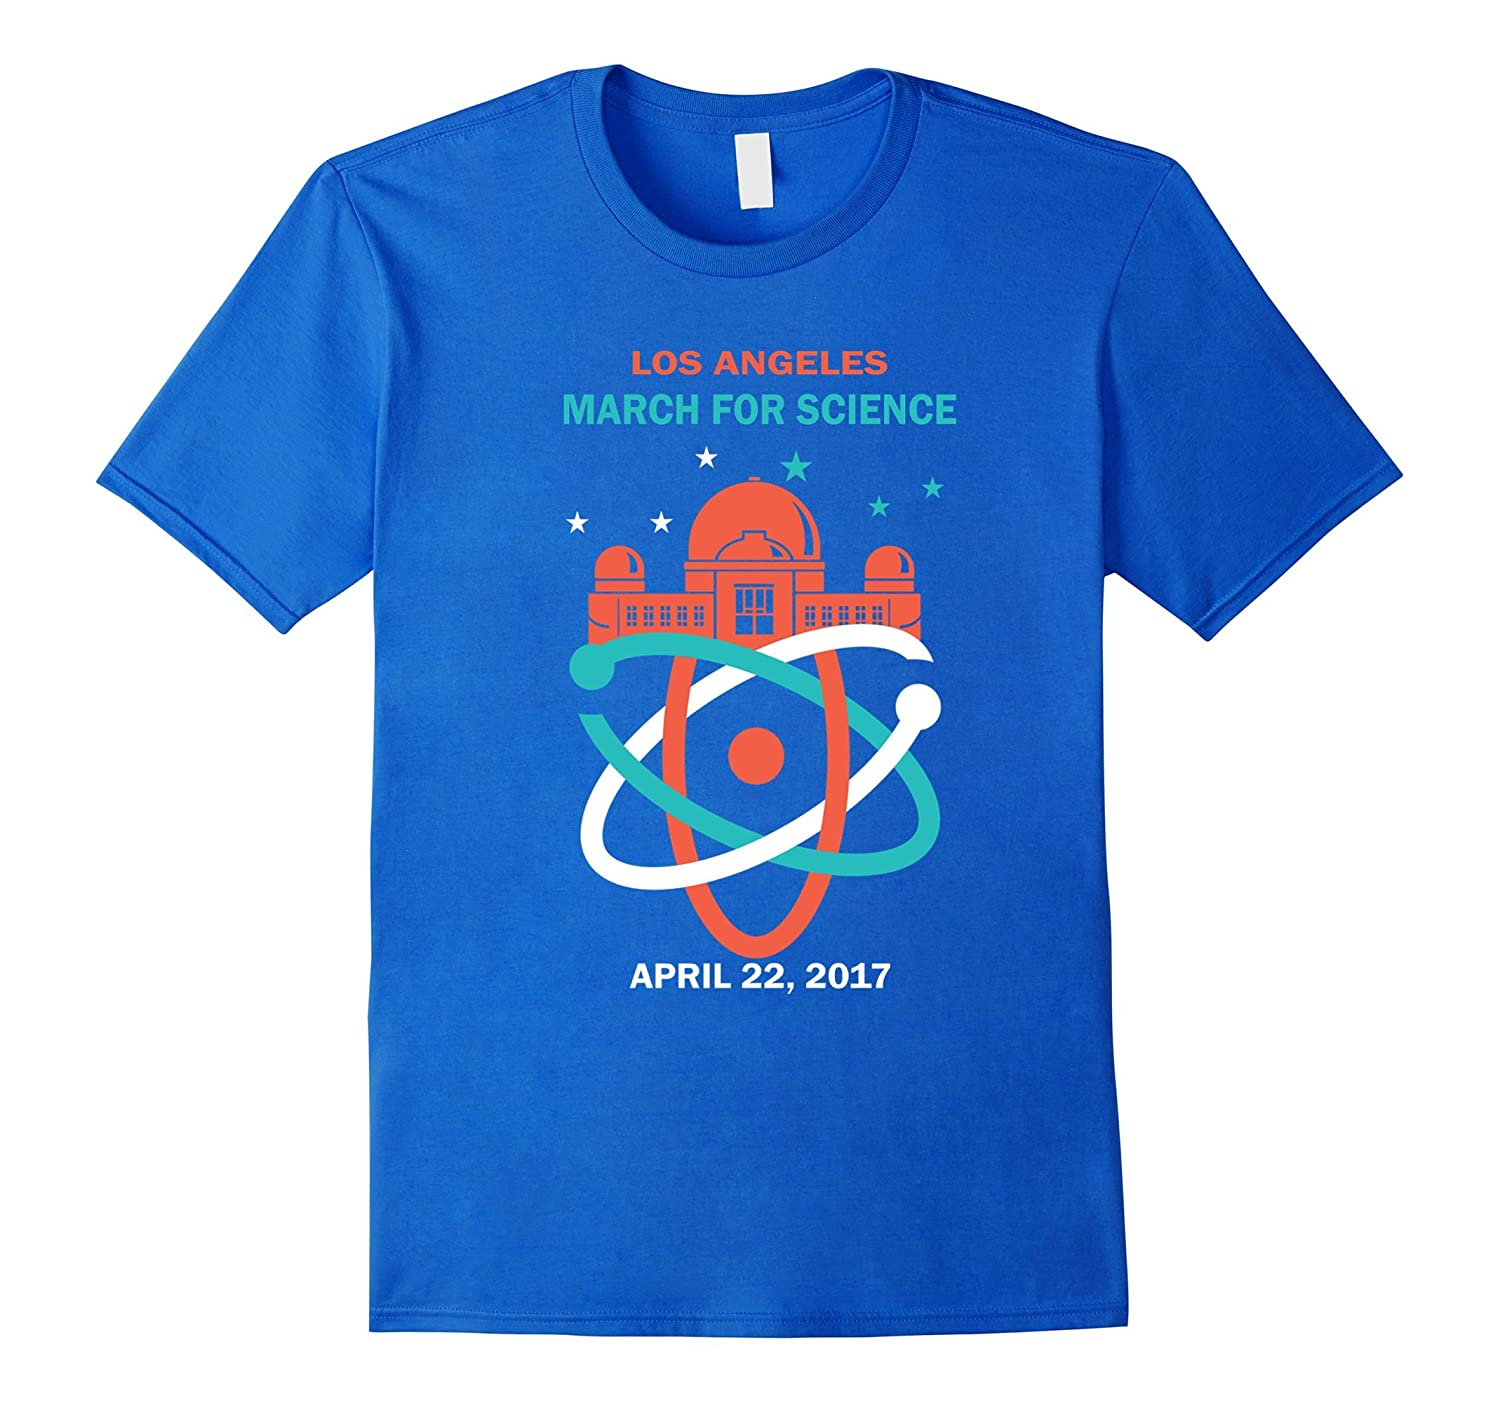 March For Science Earth Day April 22, 2017 Los Angeles CA